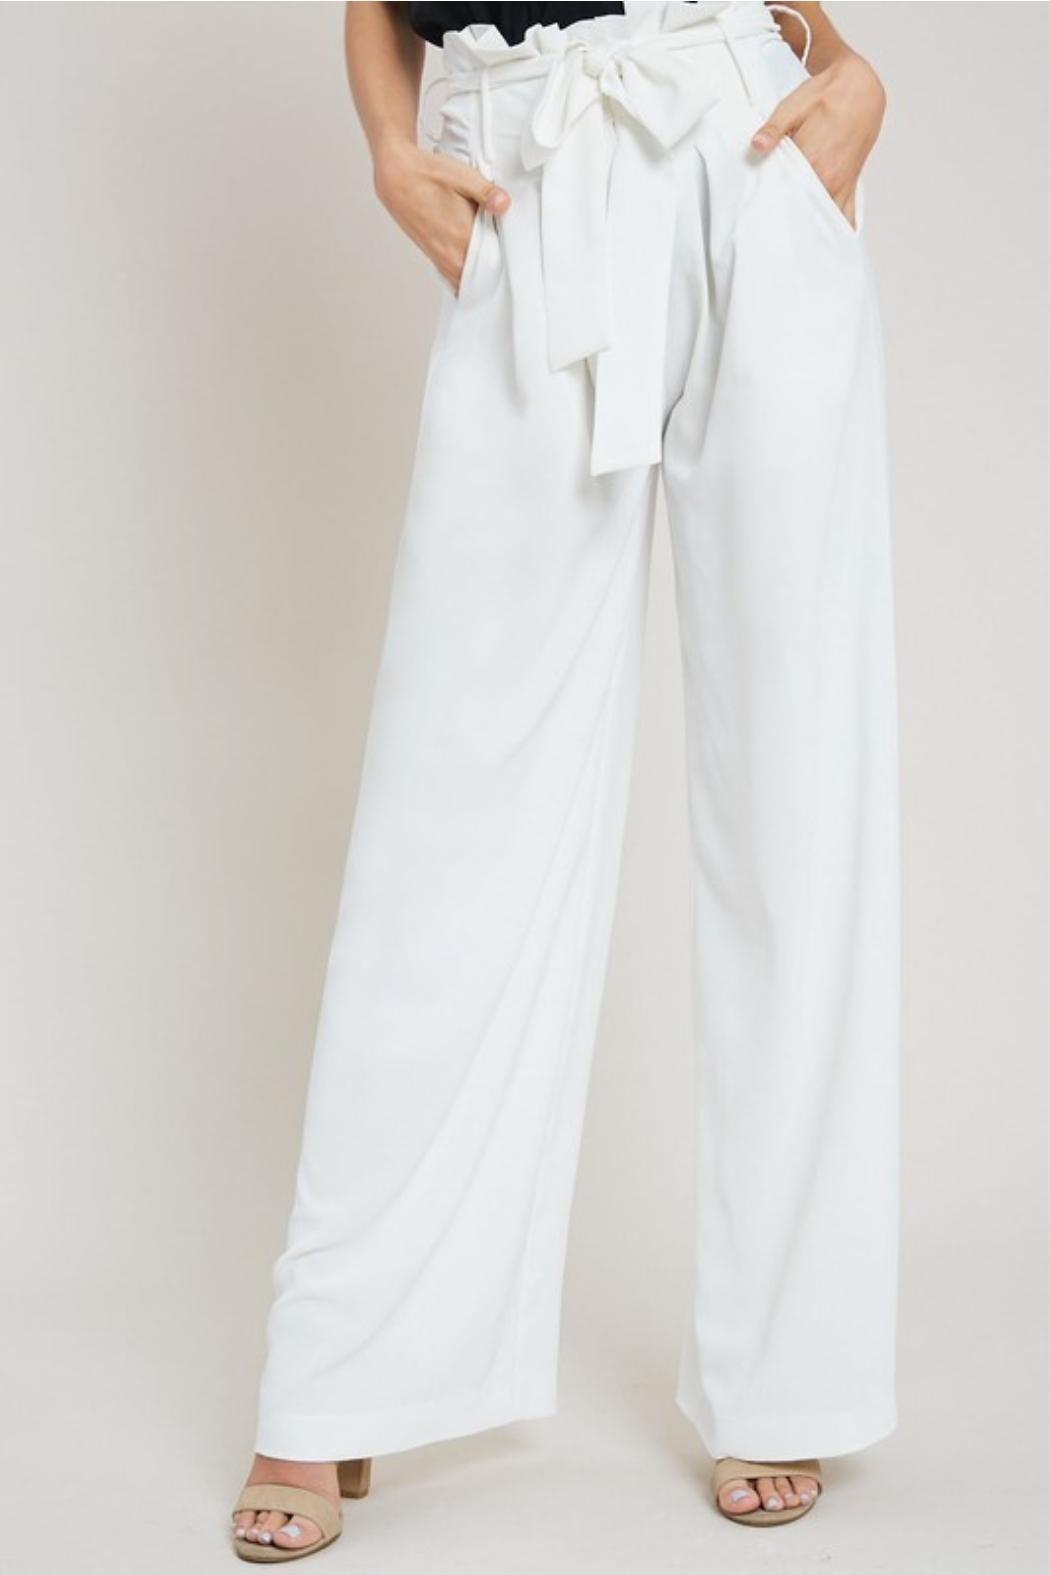 eesome White Dress Pants - Main Image